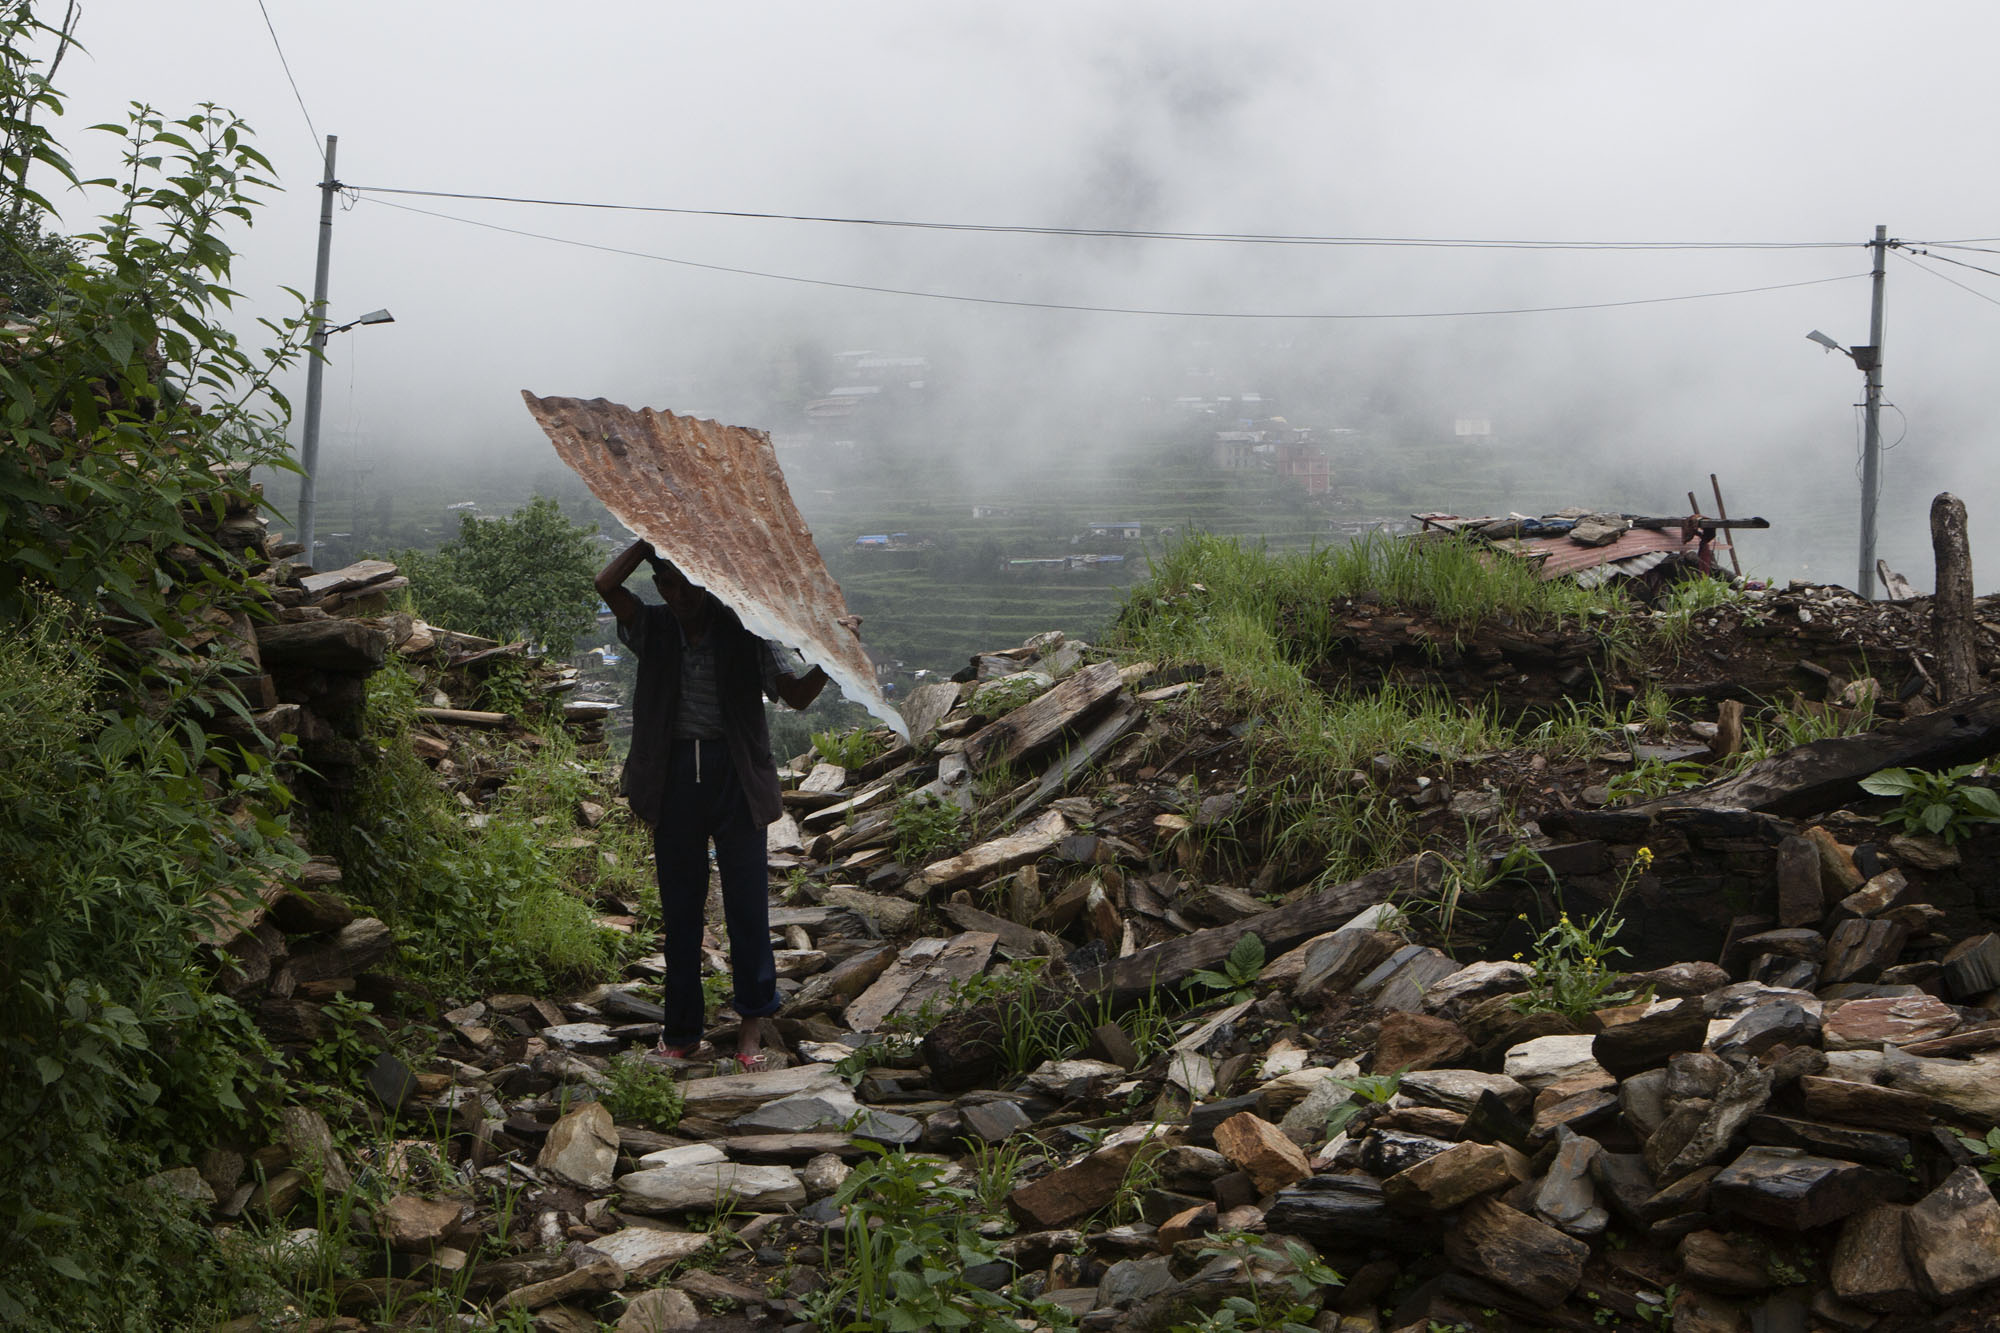 Prembahadur Shrestha age 65, works to clear rubble from his home. Tauthali Village ward No.3 Sindupalchowk District, Nepal. August 5, 2015.